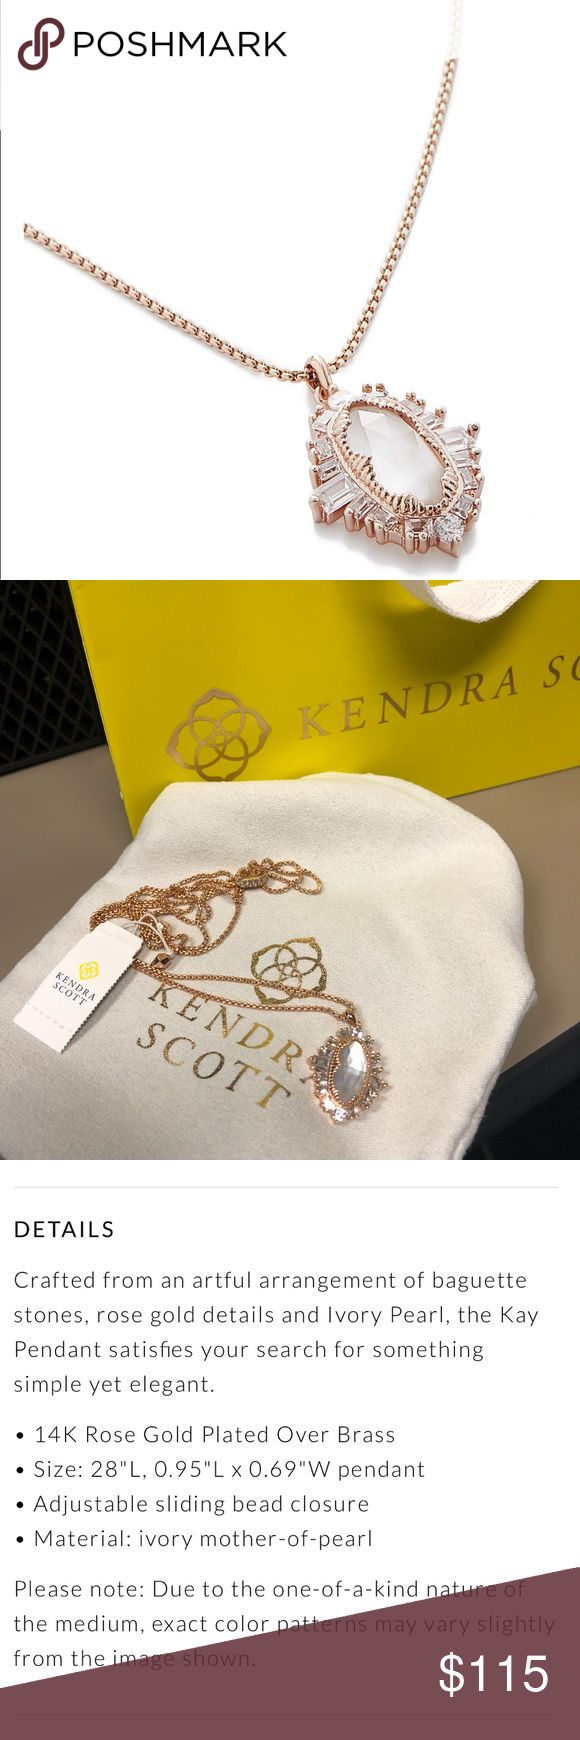 Kendra Scott Rose Gold Kay Pendant Necklace Beautiful Kendra Scott Kay pendant necklace in rose gold. Please see product details above. It is brand new with the tags and cones in its original dust bag and with the shopping bag. Please ask questions! Kendra Scott Jewelry Necklaces #rosegoldnecklace